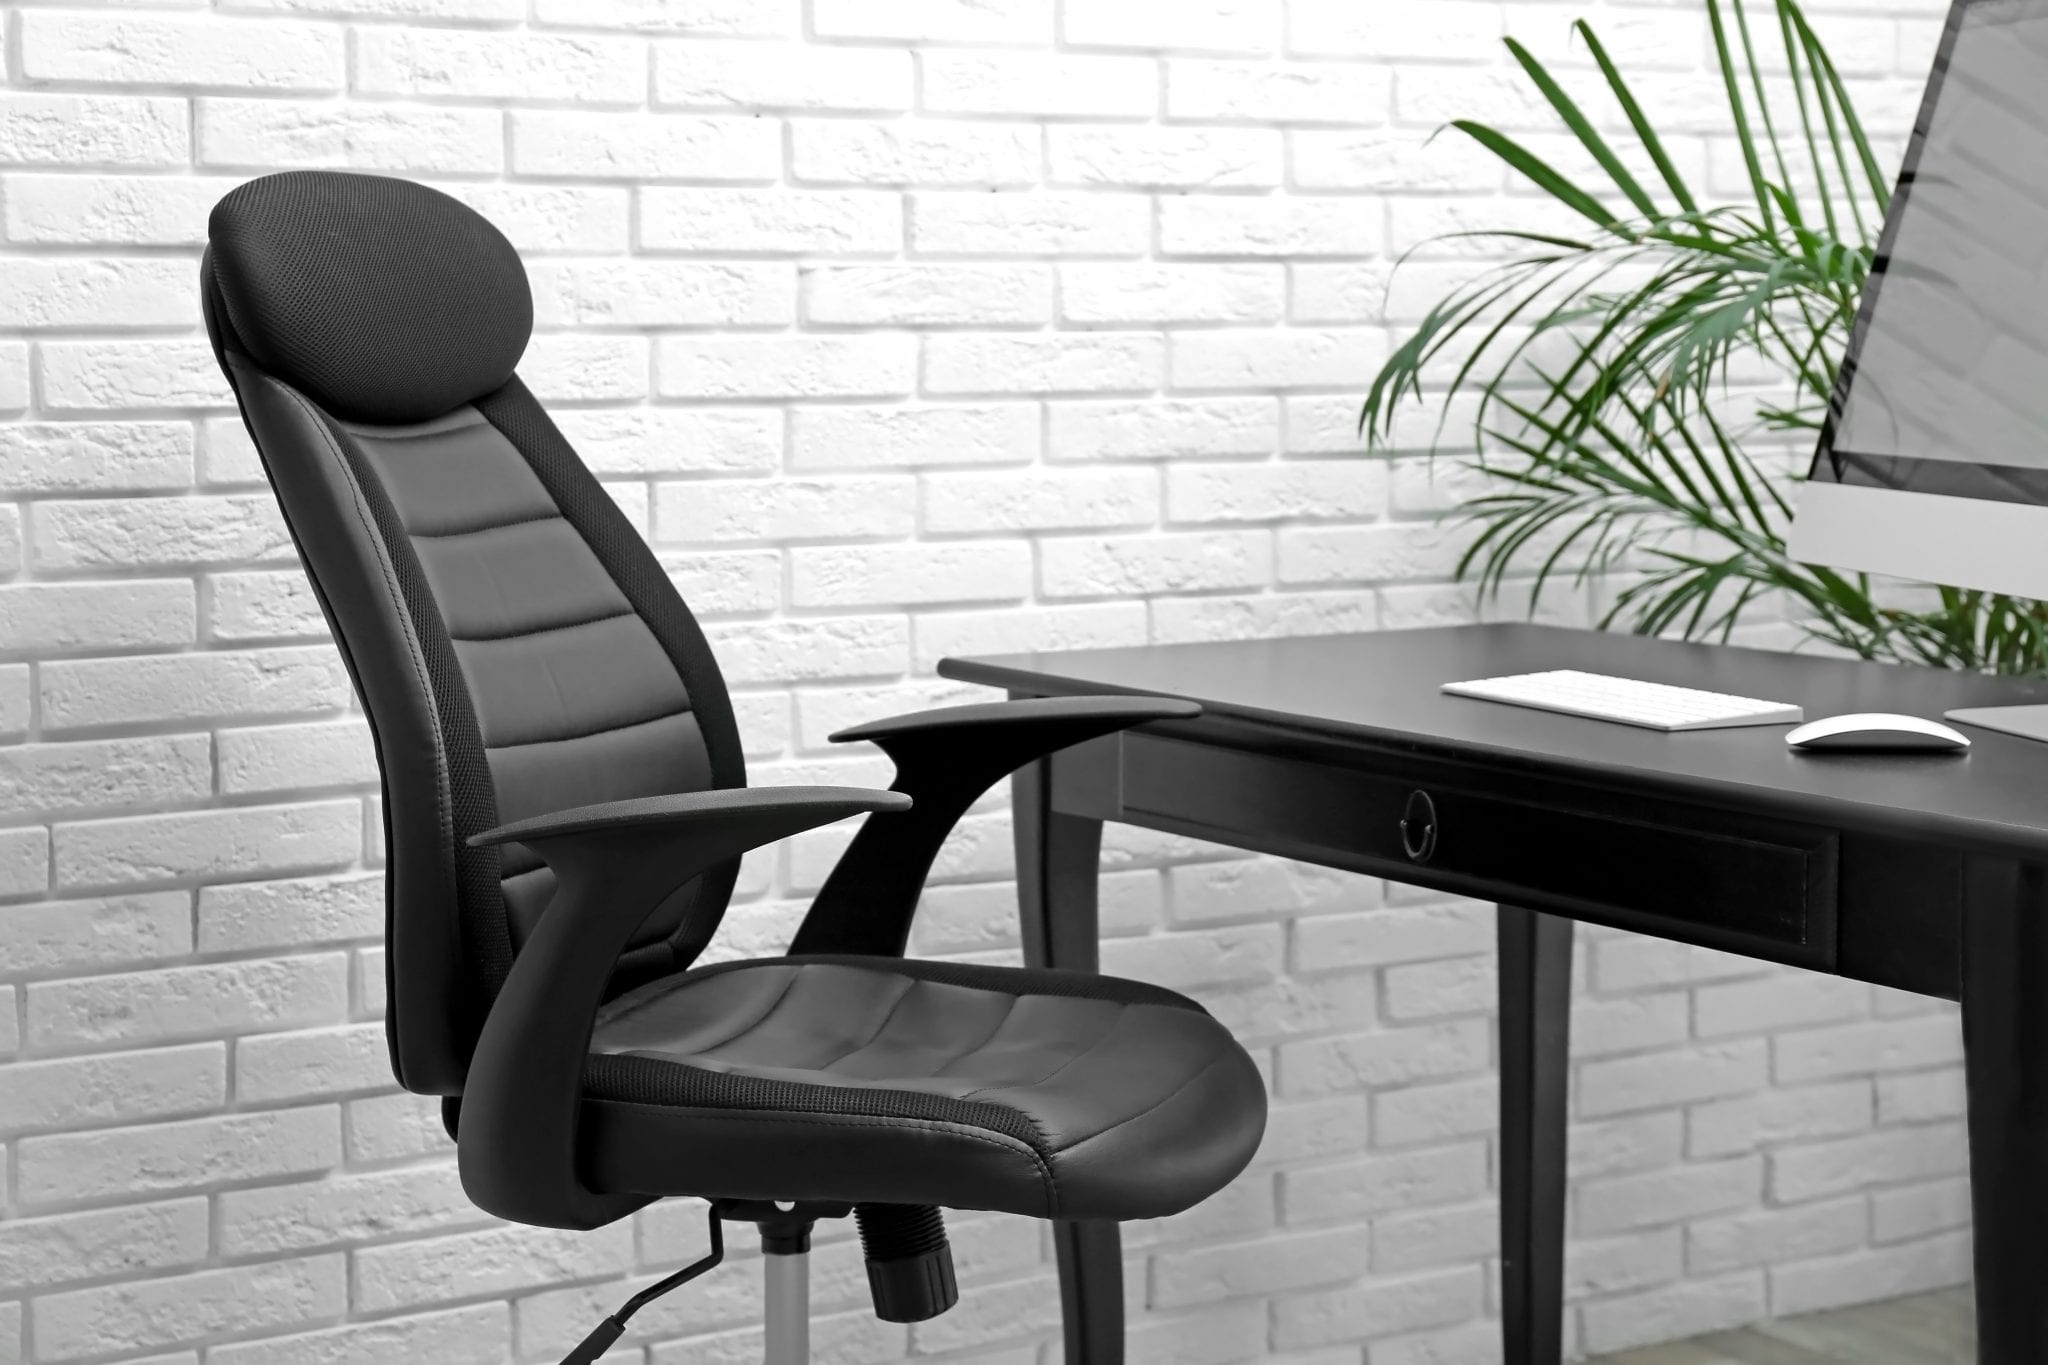 Stylish workplace interior with modern office chair